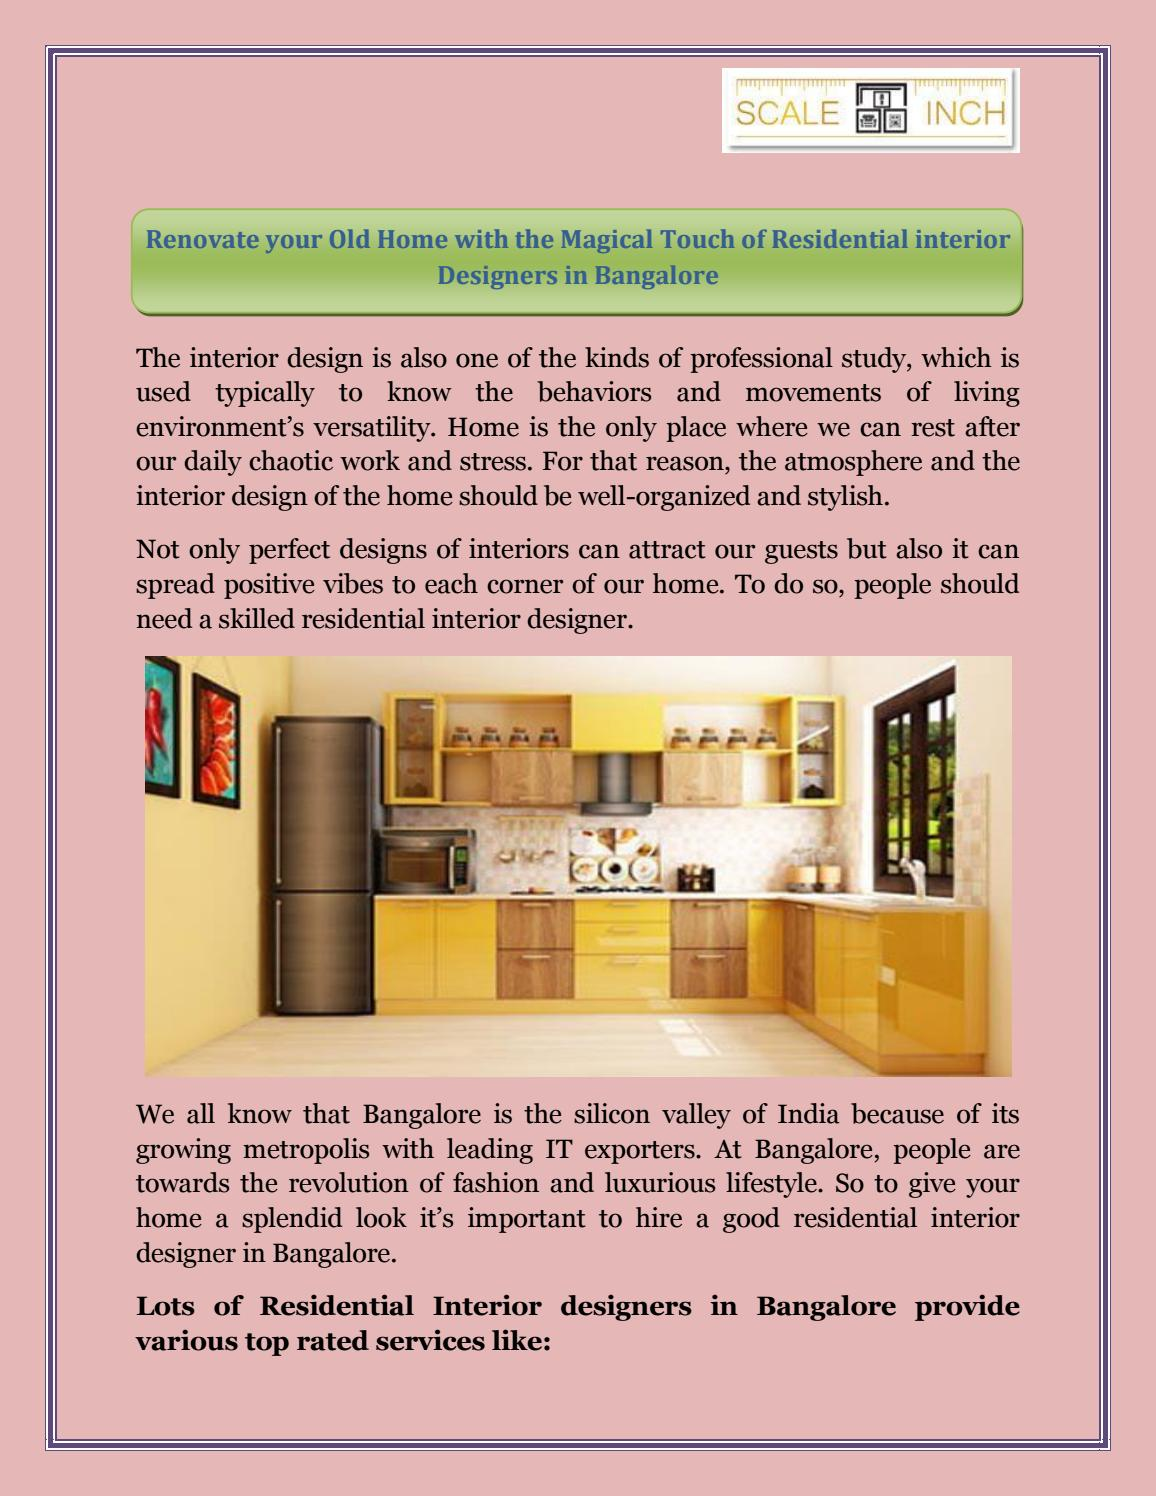 Renovate Your Old Home With The Magical Touch Of Residential Interior Designers In Bangalore By Scaleinch Pvt Ltd Issuu